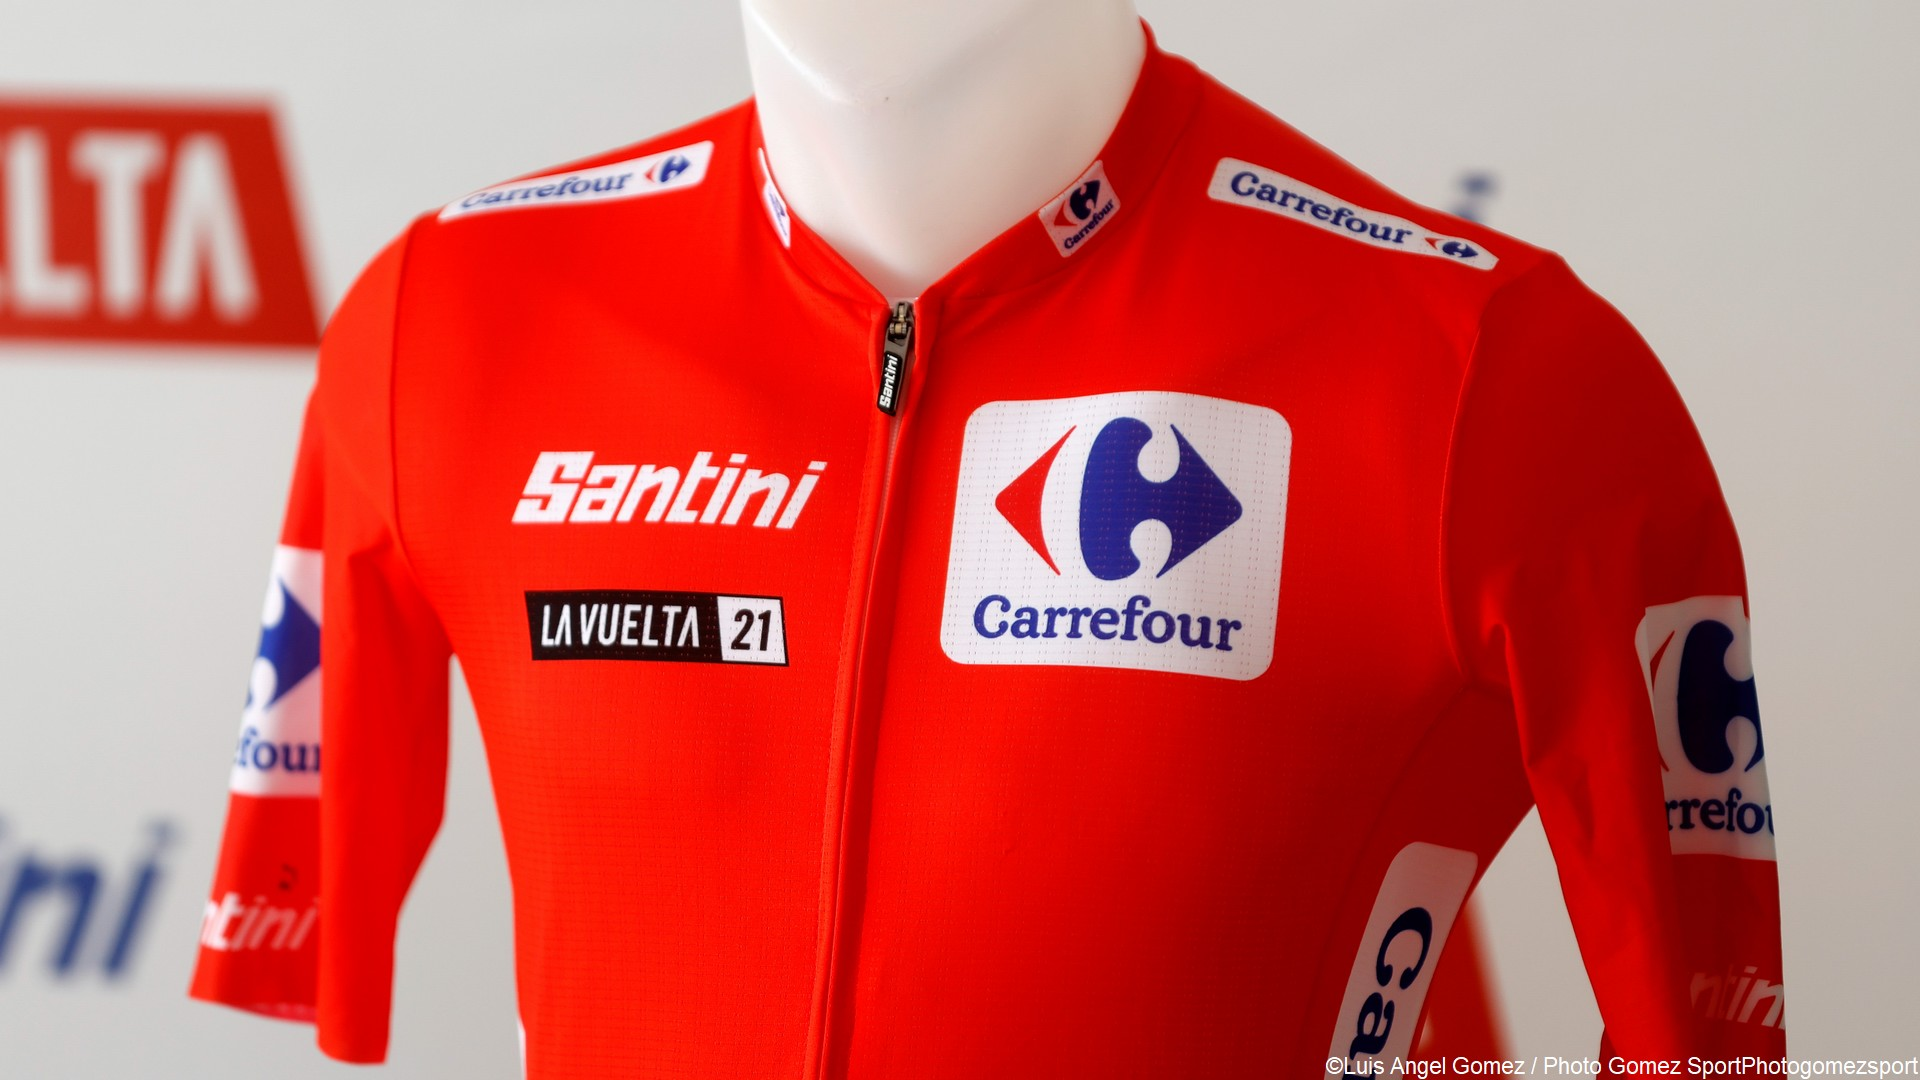 Cyclisme – Vuelta 2021 – Maillot rouge Carrefour (2)